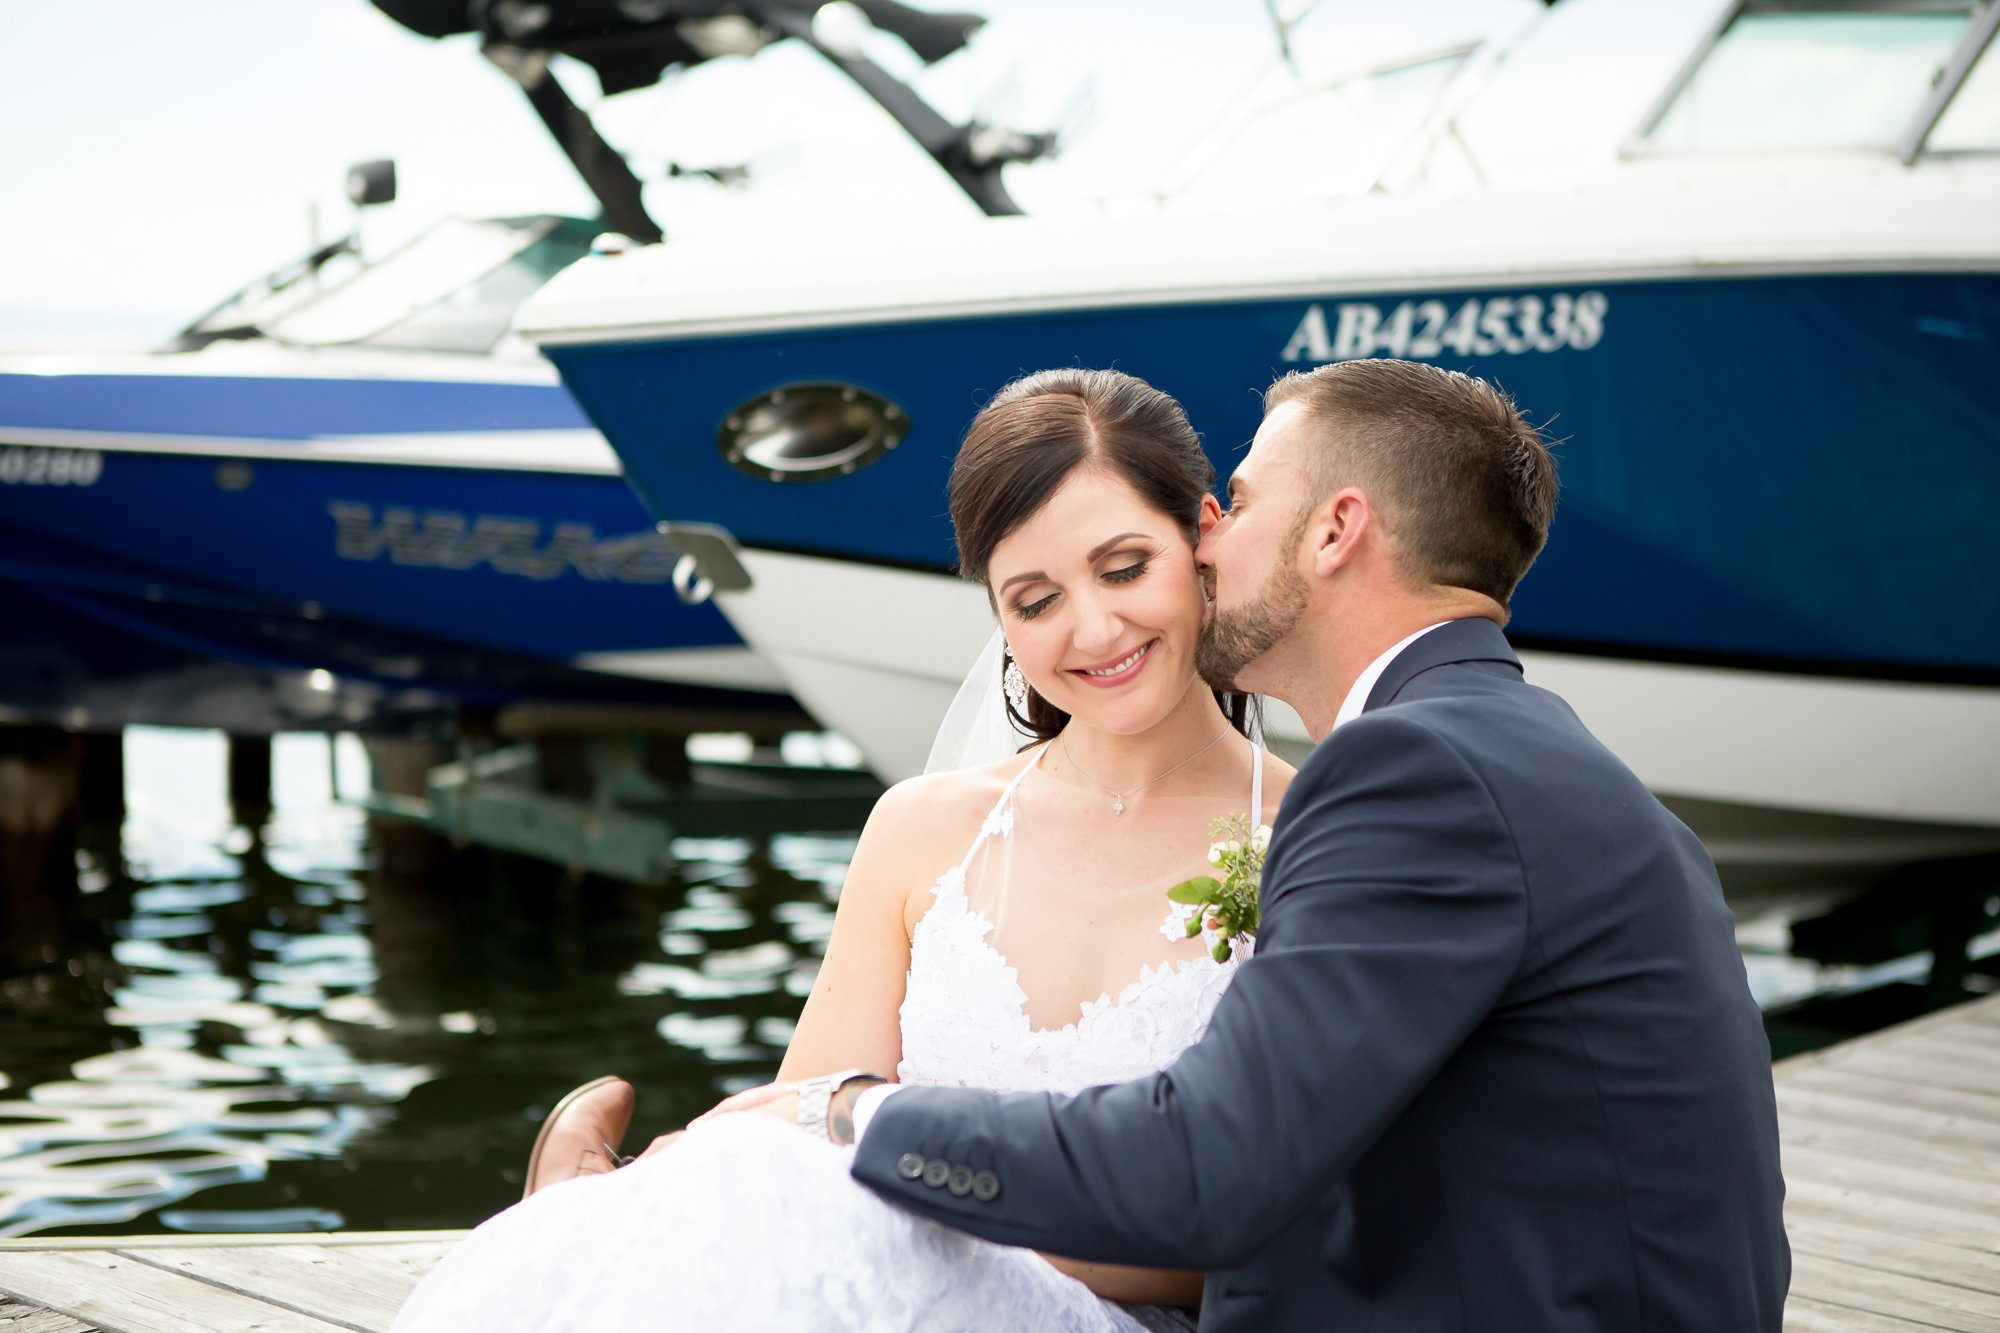 A groom kissing his bride on the cheek in a marina